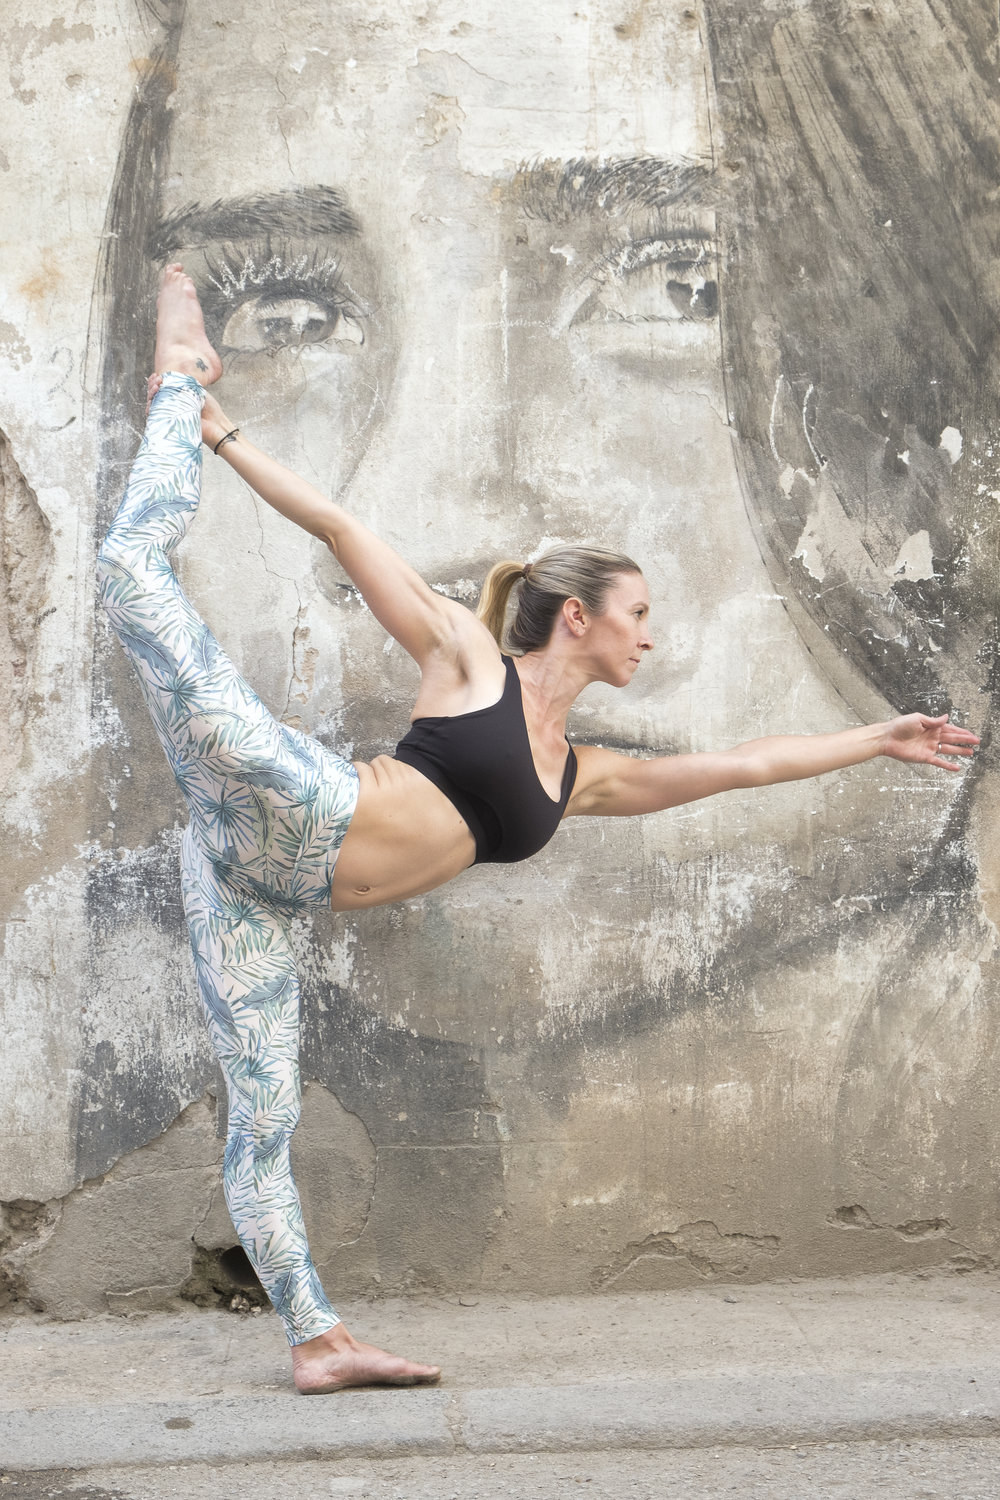 QUALIFATIONS IN ACTION    YOGA TRAINING    200 Hr RYT with Yoga Alliance , Yogacara Global Teacher Training,  2017-present    https://www.yogateachertrainingyogacara.com    Buti Yoga instructor , Advanced trained, hot-core, Buti sculpt,  2014-present    Buti Yoga Master Trainer, 2018    www.butiyoga.com    YogaFit Certified Instructor  ,  2011- 2017   Certified Level 1 Instructor  Certified Level 2 Instructor  Certified Level 3 Instructor  Children's Yoga Instructor   http://yogafitcanada.com    FITNESS TRAINING    Sleek Technique Principle Teacher Trainer, 2018   Sleek Barre, Sleek Ballet Bootcamp, Sleek Ballerina Back & Arms, Sleek Dancer Refined Abs   http://sleektechnique.com    Can-fit Pro, 2012   Certified Fitness Instructor Specialist   Extension Method Instructor  , Toronto,ON,  2011-2015    www.extensionmethod.com/   Certified Extension Method Instructor (ballet fitness)   Certified Booty Barre Instructor, 2012    http://bootybarre.com    Stott Pilates  ,  2013   Total Barre Workshops (level 1 & Level 2)   Certified Piyo Instructor , 2013    DANCE TRAINING    Susanne Burt School of Ballet , Simcoe, ON ,  1980-1989   Royal Academy of Dance training   Jo Ann Adams School of Dance,  Simcoe, ON ,  1989-1996   Royal Academy of Dance training to Advanced level 1  Danced competitively in Ballet, Modern and Contemporary styles   York University Dance BFA,  Toronto, ON,  1996-1998   Studies and trained RAD, Cecchetti, Graham, Cunningham and Limon techniques   http://futurestudents.yorku.ca/program/dance    Banff Centre for Performing Arts,  Banff, AB,  1999-2001   Modern technique   https://banffcentre.ca/performing-arts    National Ballet of Canada , Toronto, ON,  2004-2006   Ballet technique   http://www.nbs-enb.ca    City Dance Corps  Toronto, ON,  2009-2013   Ballet technique   http://www.citydancecorps.com    Canadian Contemporary Dance Theatre  Toronto, ON,  2012-2013   Modern – Graham & Cunningham technique   https://www.ccdt.org    Metro Movement Dance Studi